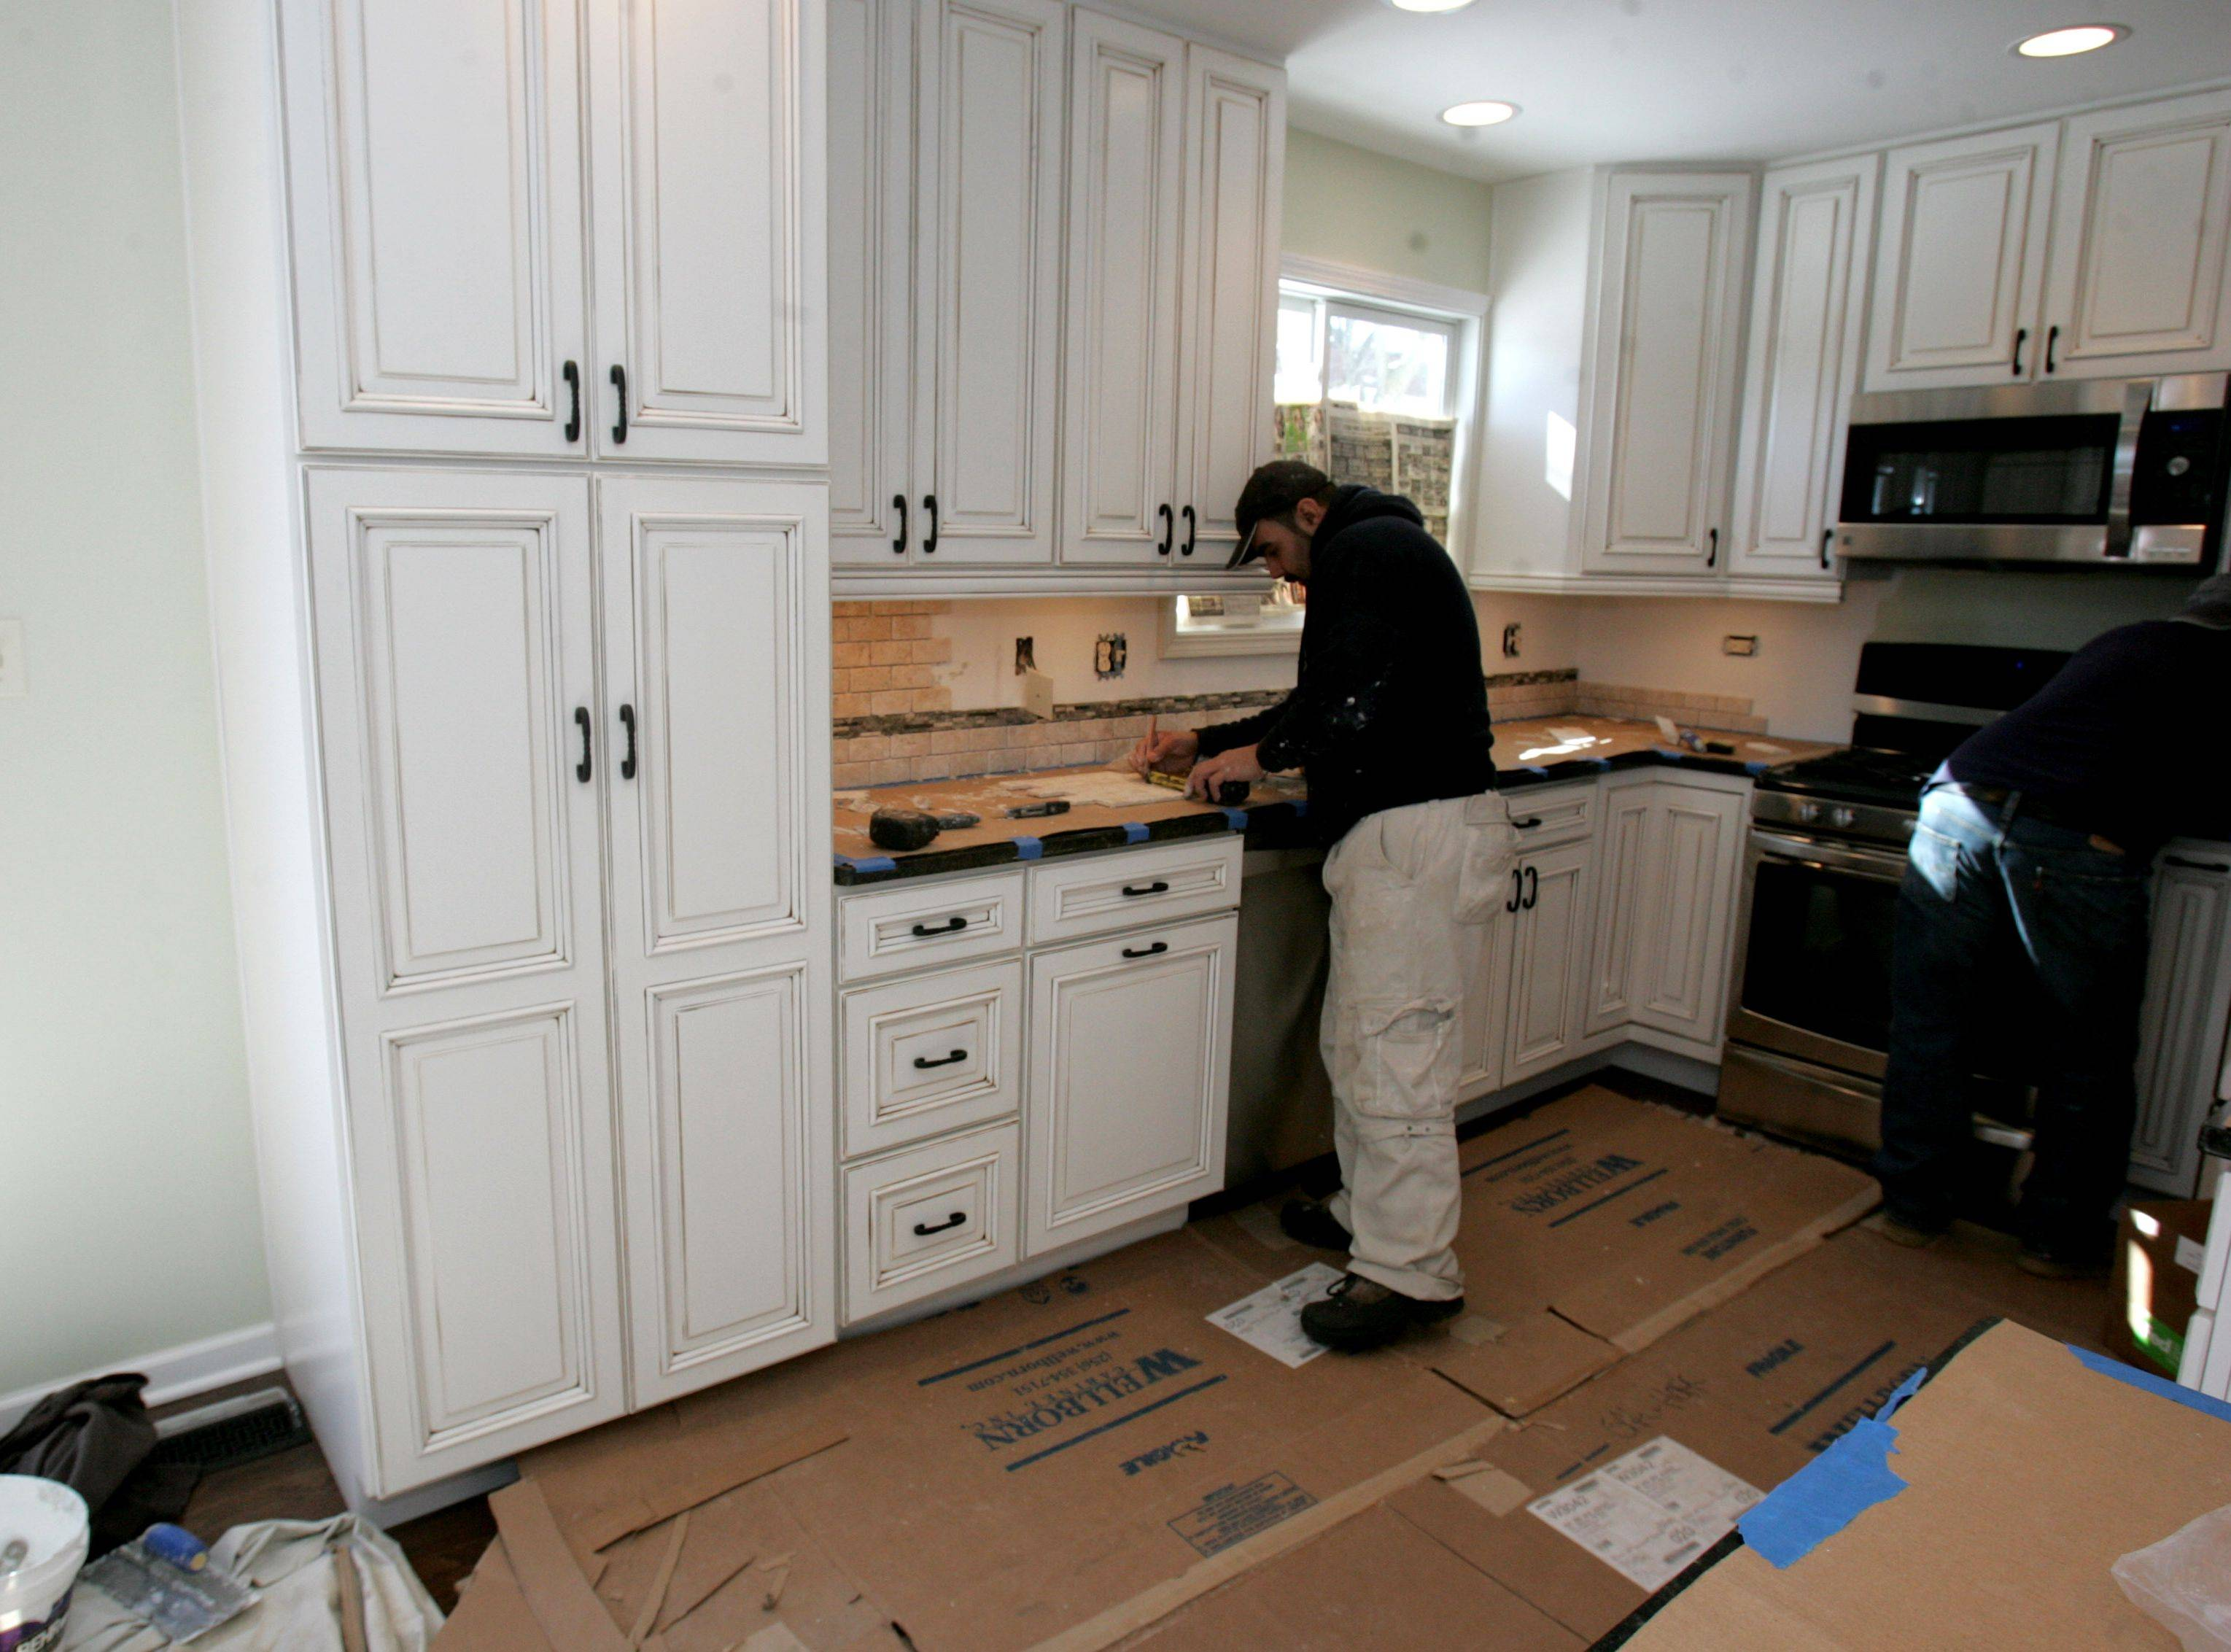 Workers put up backsplash in Pat Hoffman's kitchen in Woodridge.